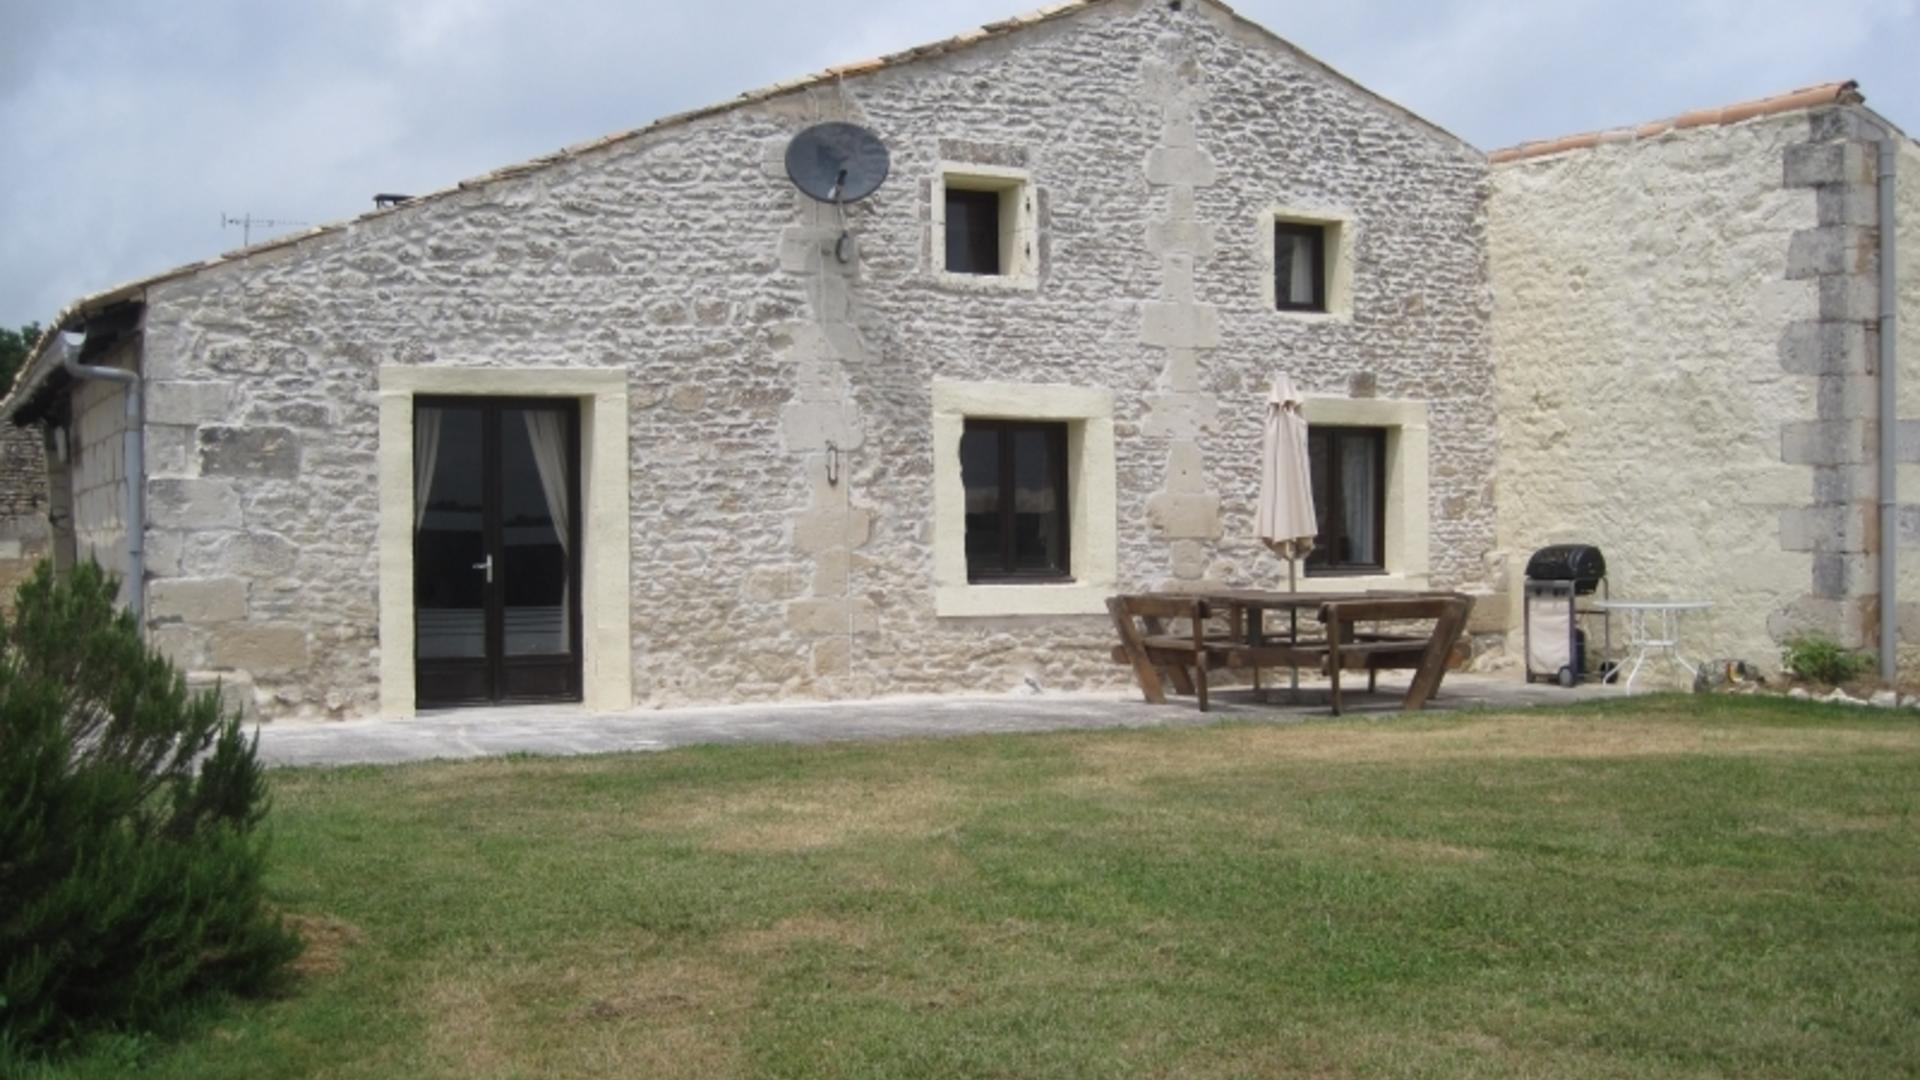 4 Bedroom Private cottage/shared facilities in Poitou-Charentes, France